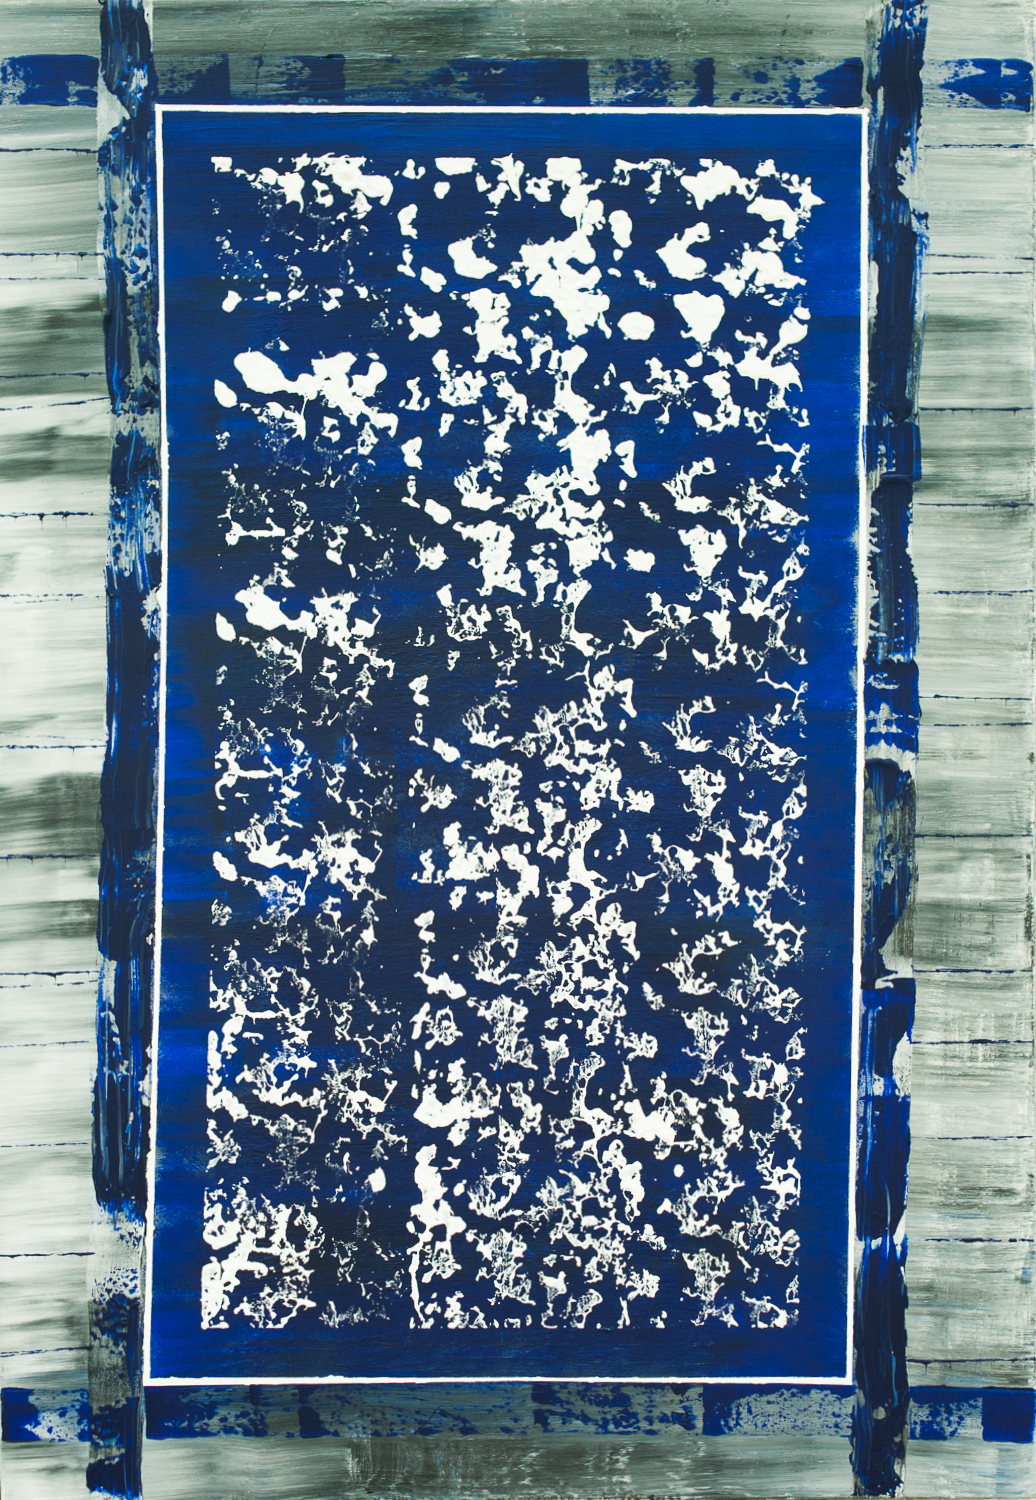 BLUE BIBLE 2016 48x60 in